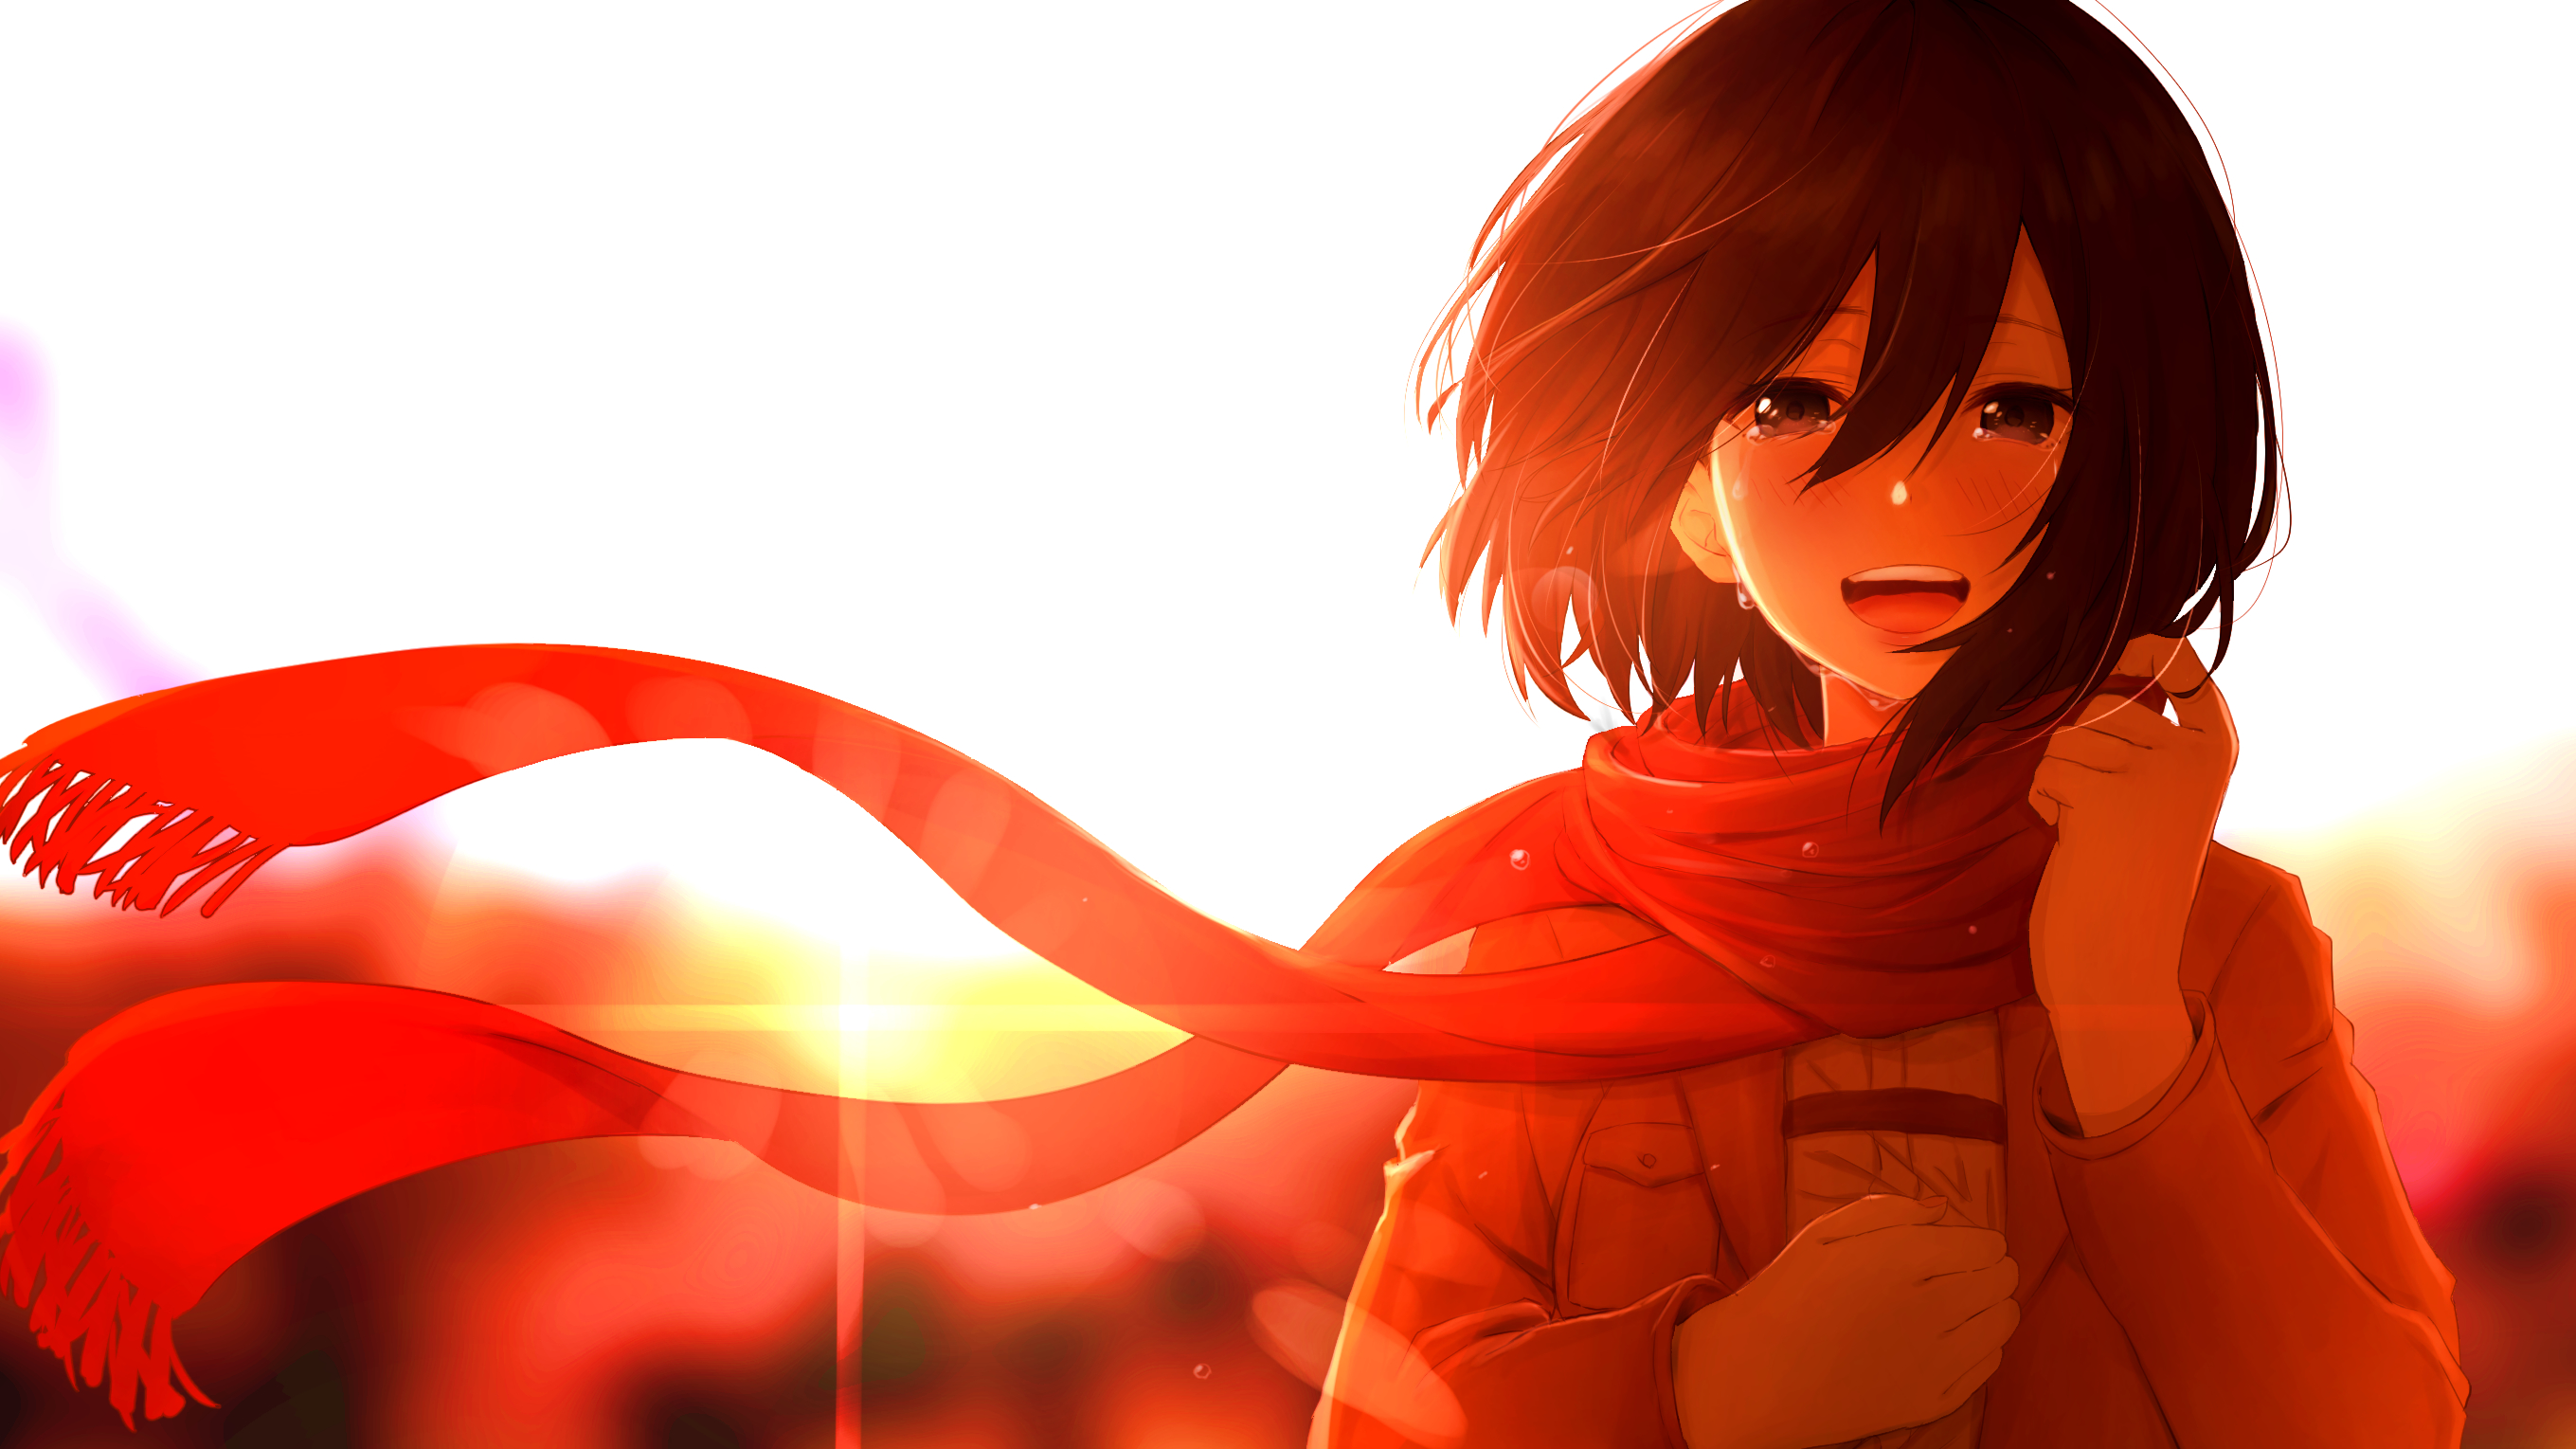 1920x1080 Mikasa Ackerman Anime 1080p Laptop Full Hd Wallpaper Hd Anime 4k Wallpapers Images Photos And Background